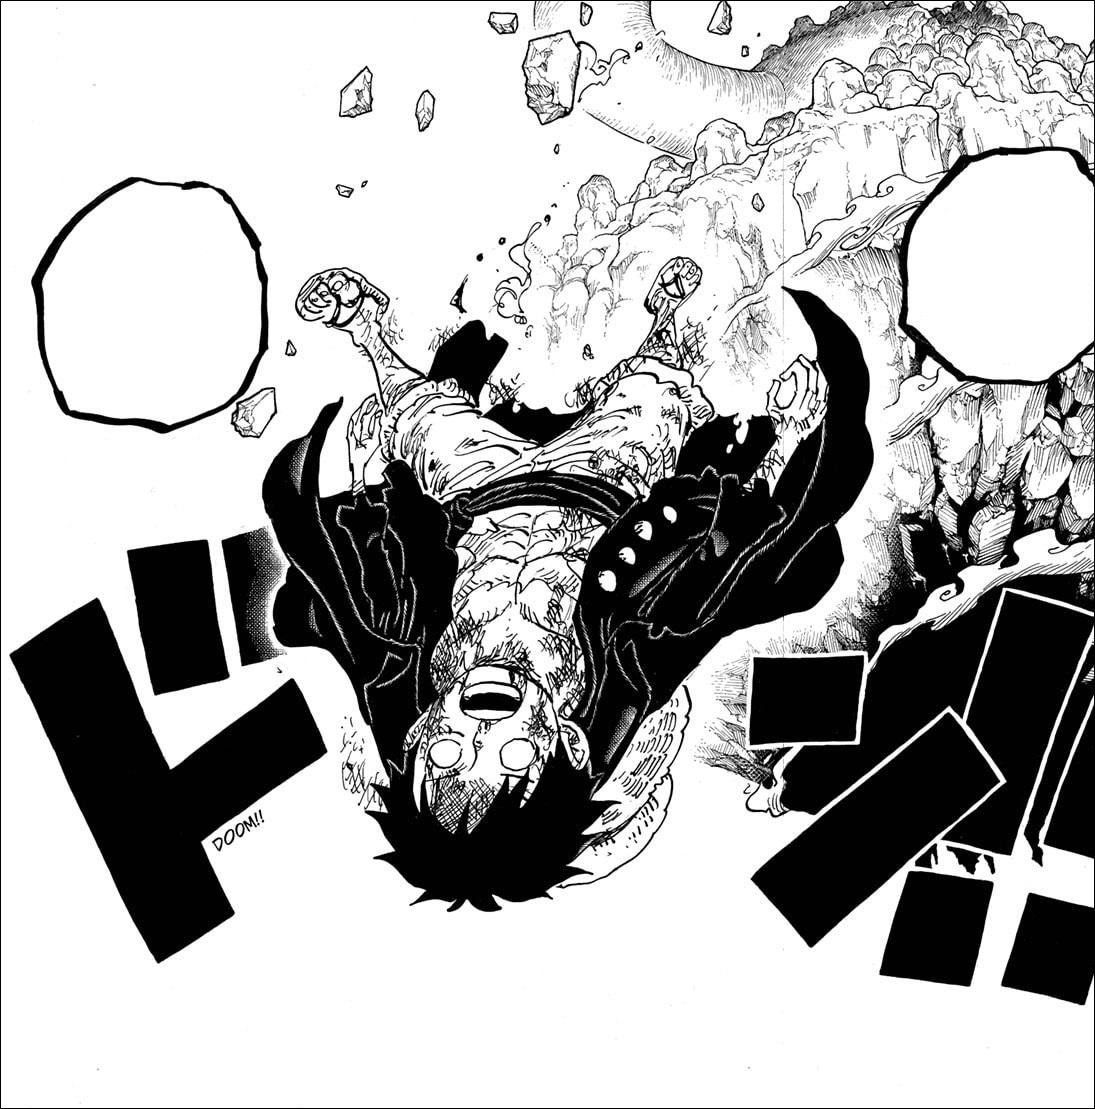 One Piece chapter 1013 - Luffy knocked out and knocked off Onigashima Island by Kaido